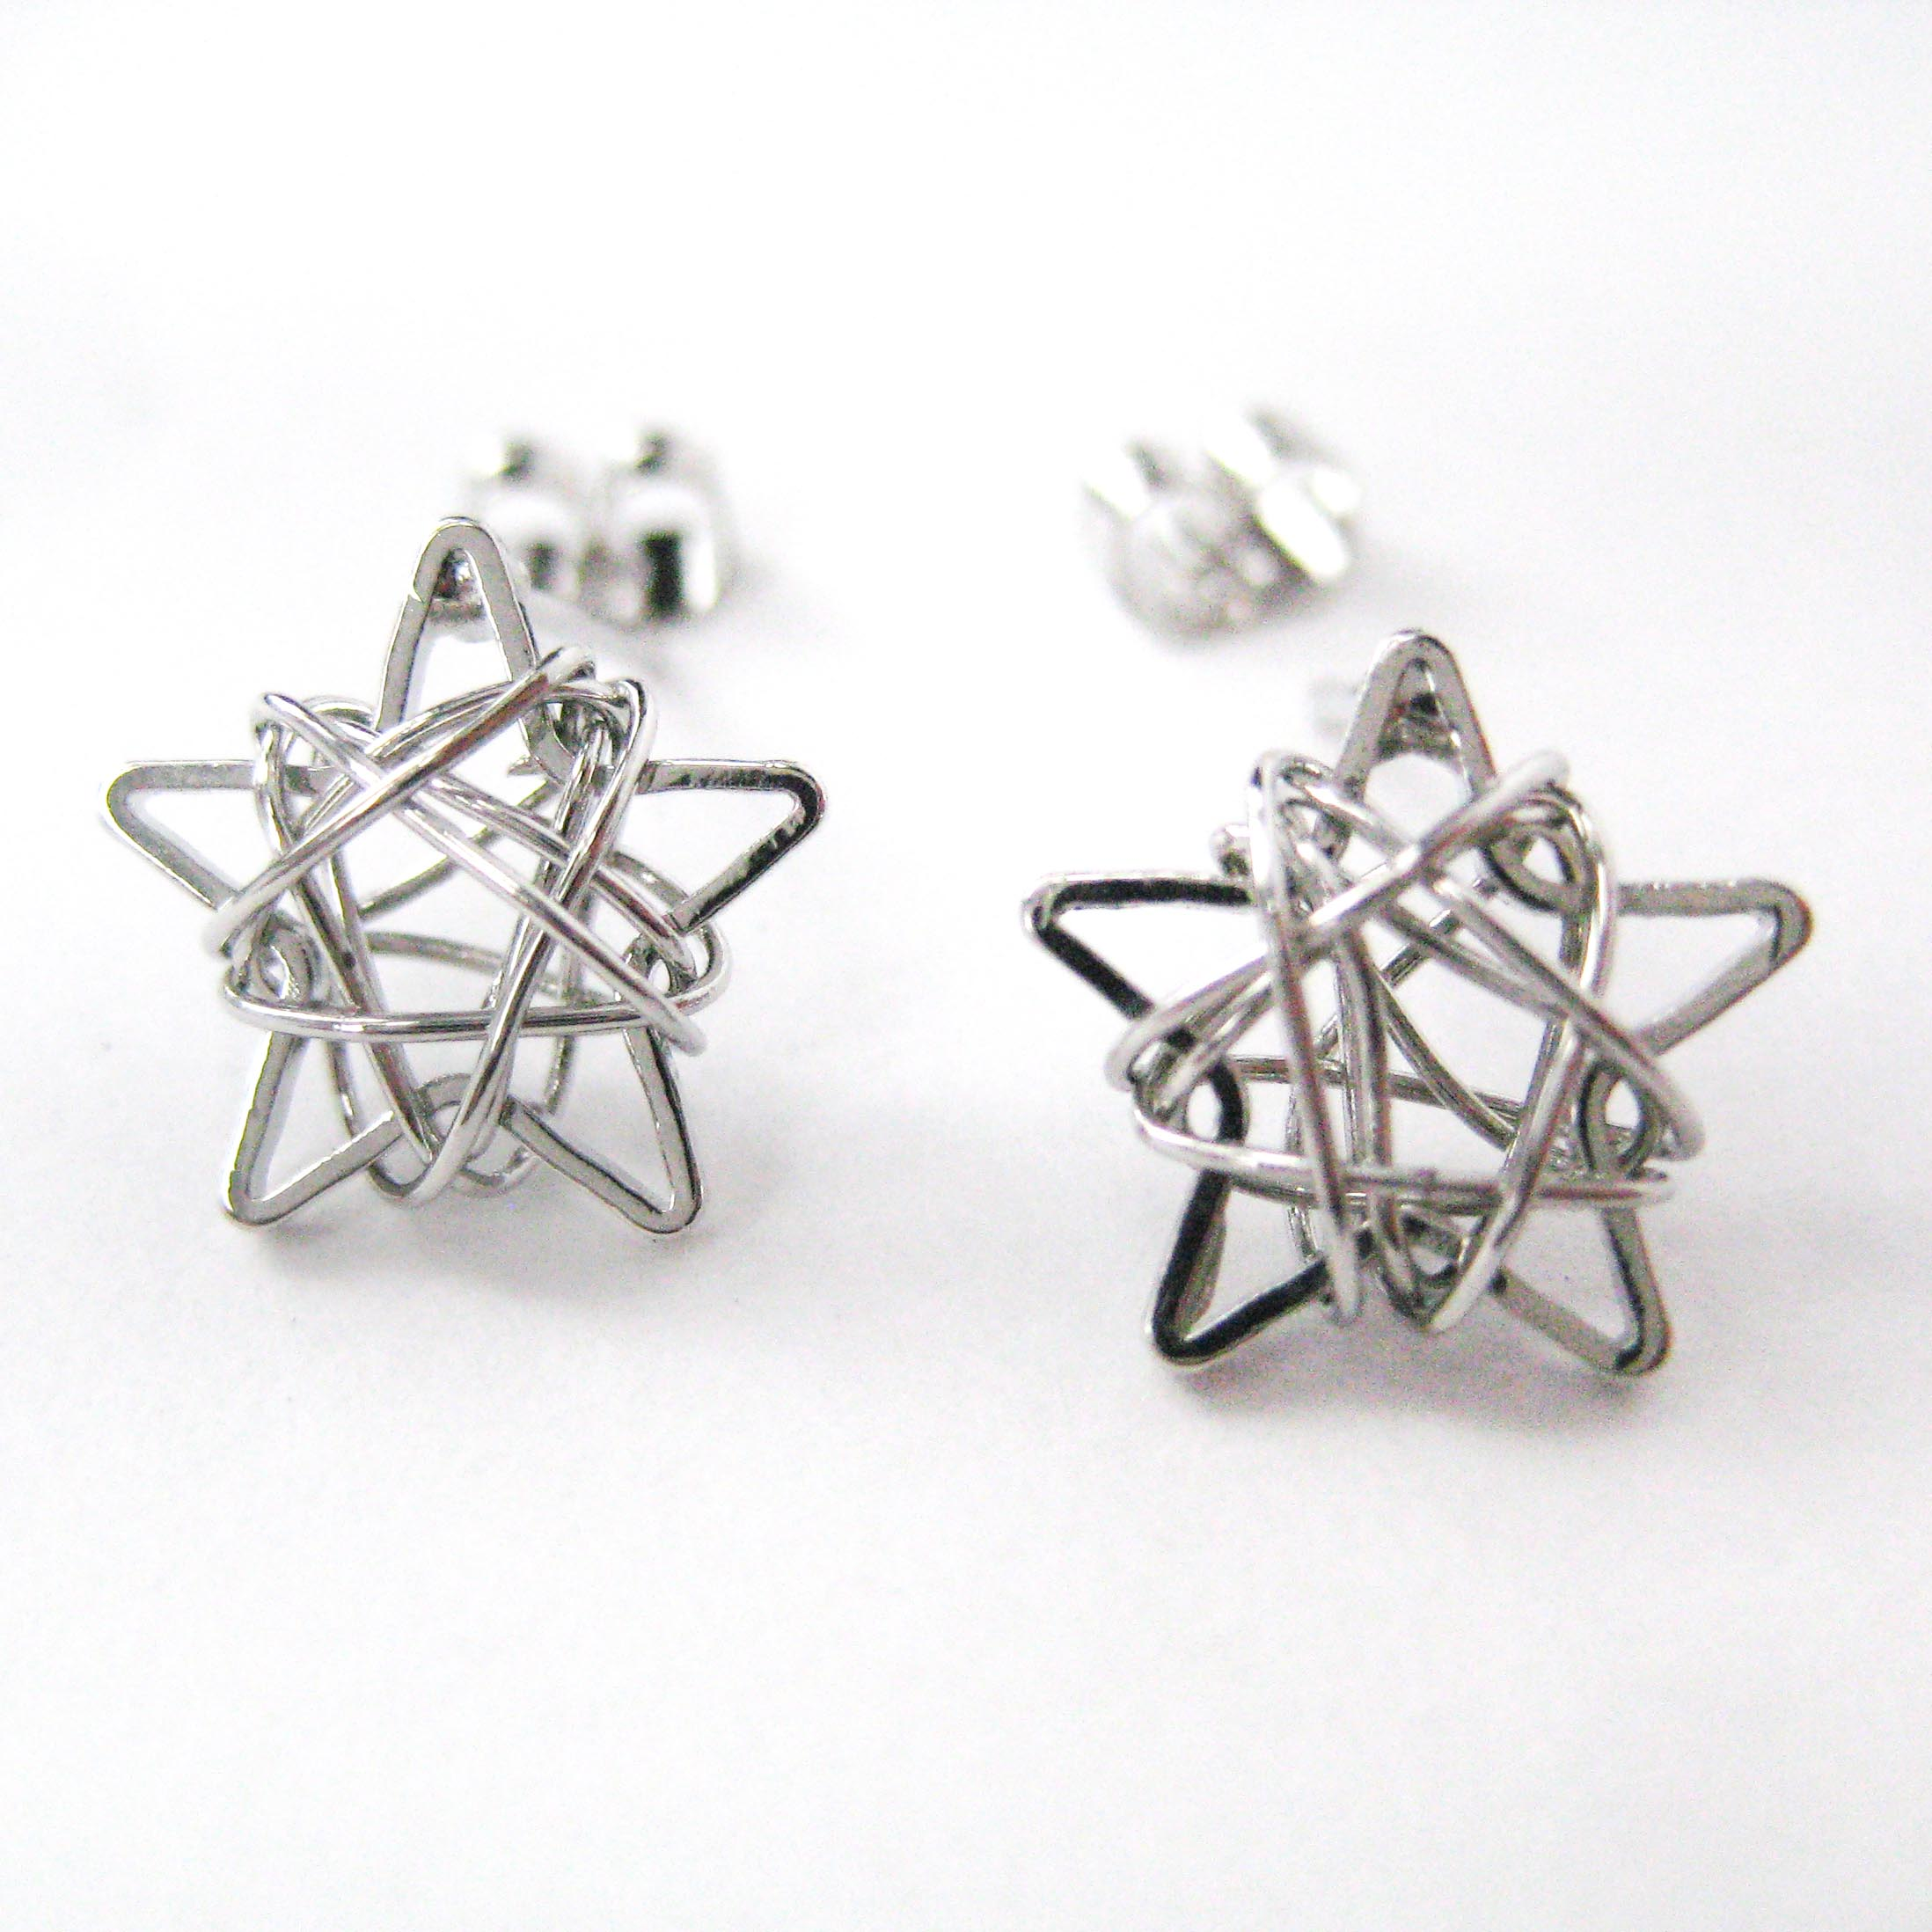 earrings s christies christie jewellery diamond graff eco stud online jewels